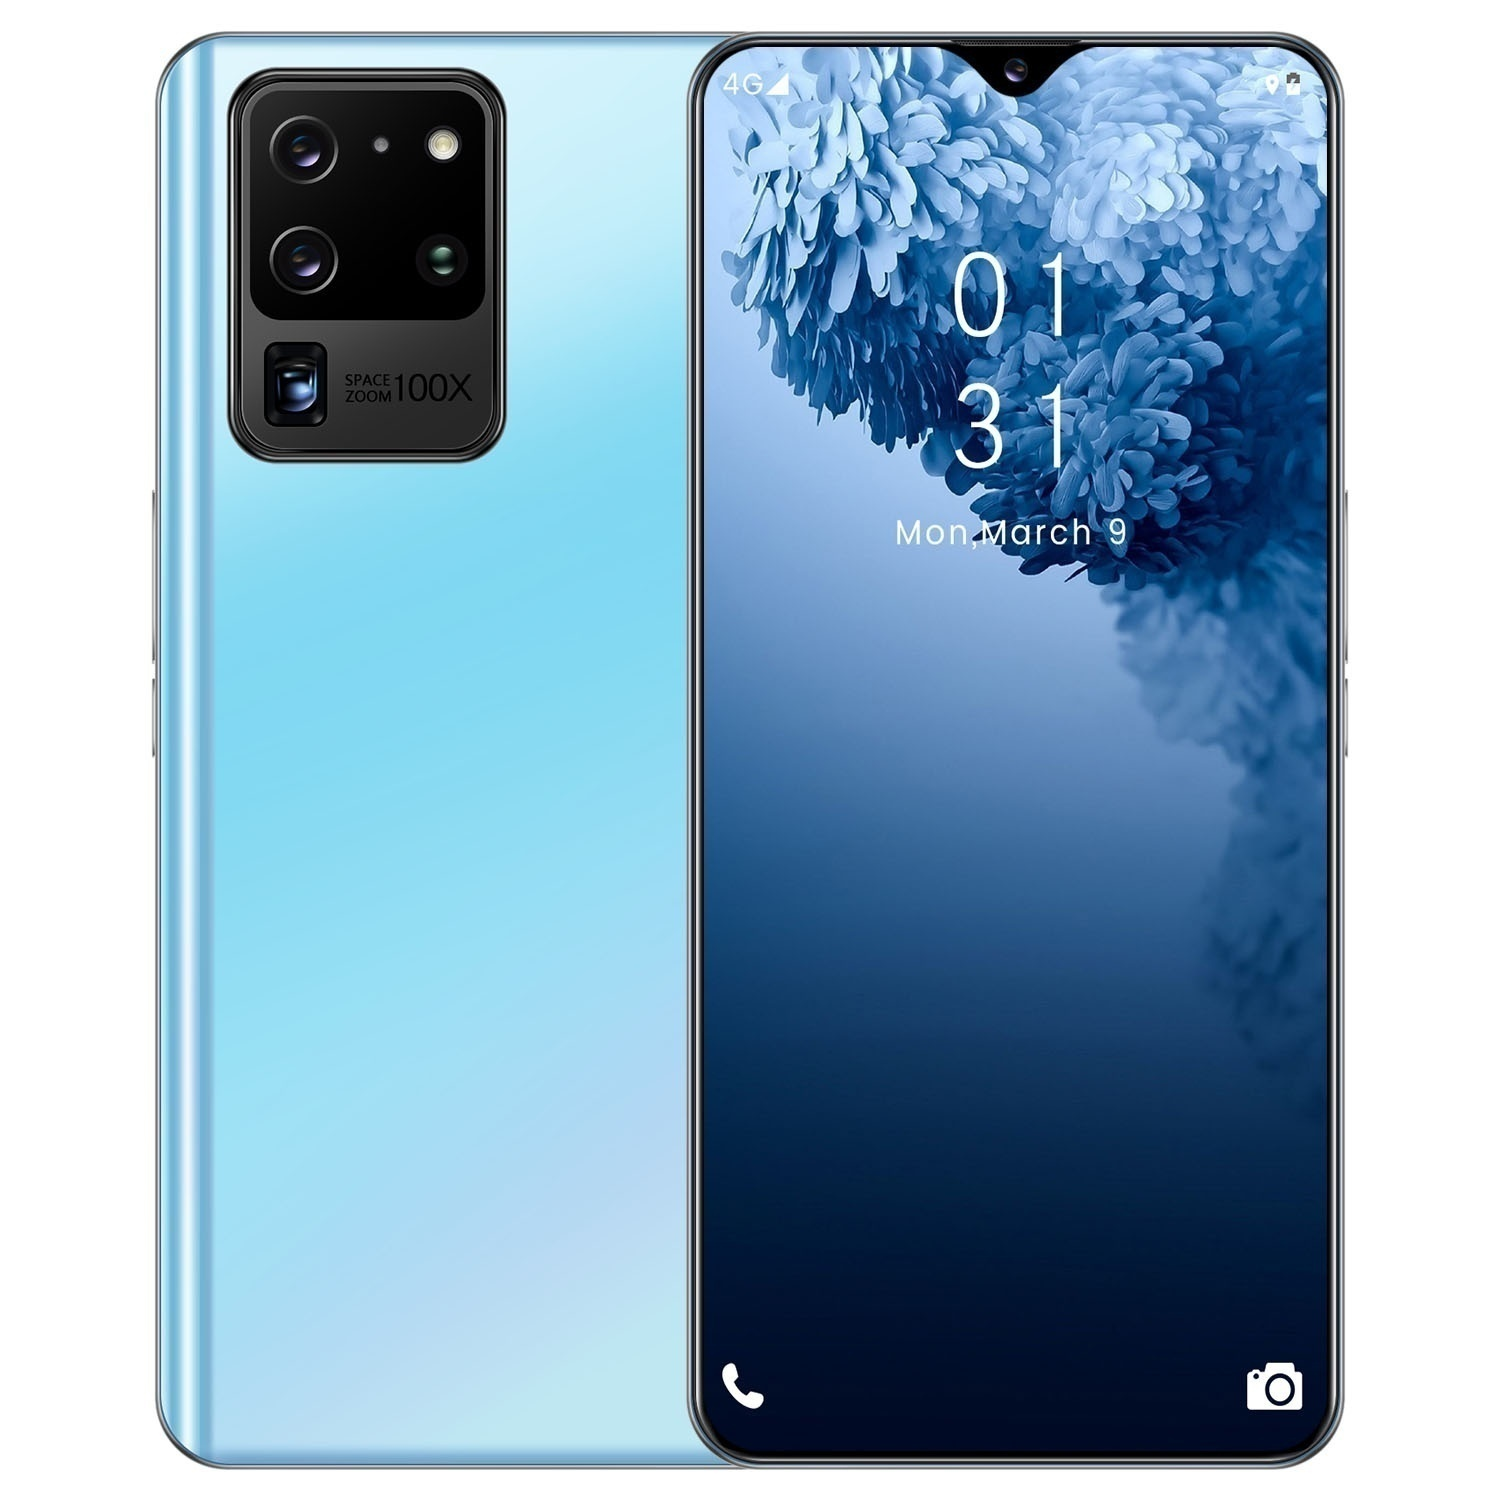 2020 New Android  Smartphone S20 pro  6.7 Inch with 12+512GB Recognition Smartphone Mobile Phone with 4G/5G Dual Sim Cards 16MP +32MP HD camera Bluetooth GPS Ten Core